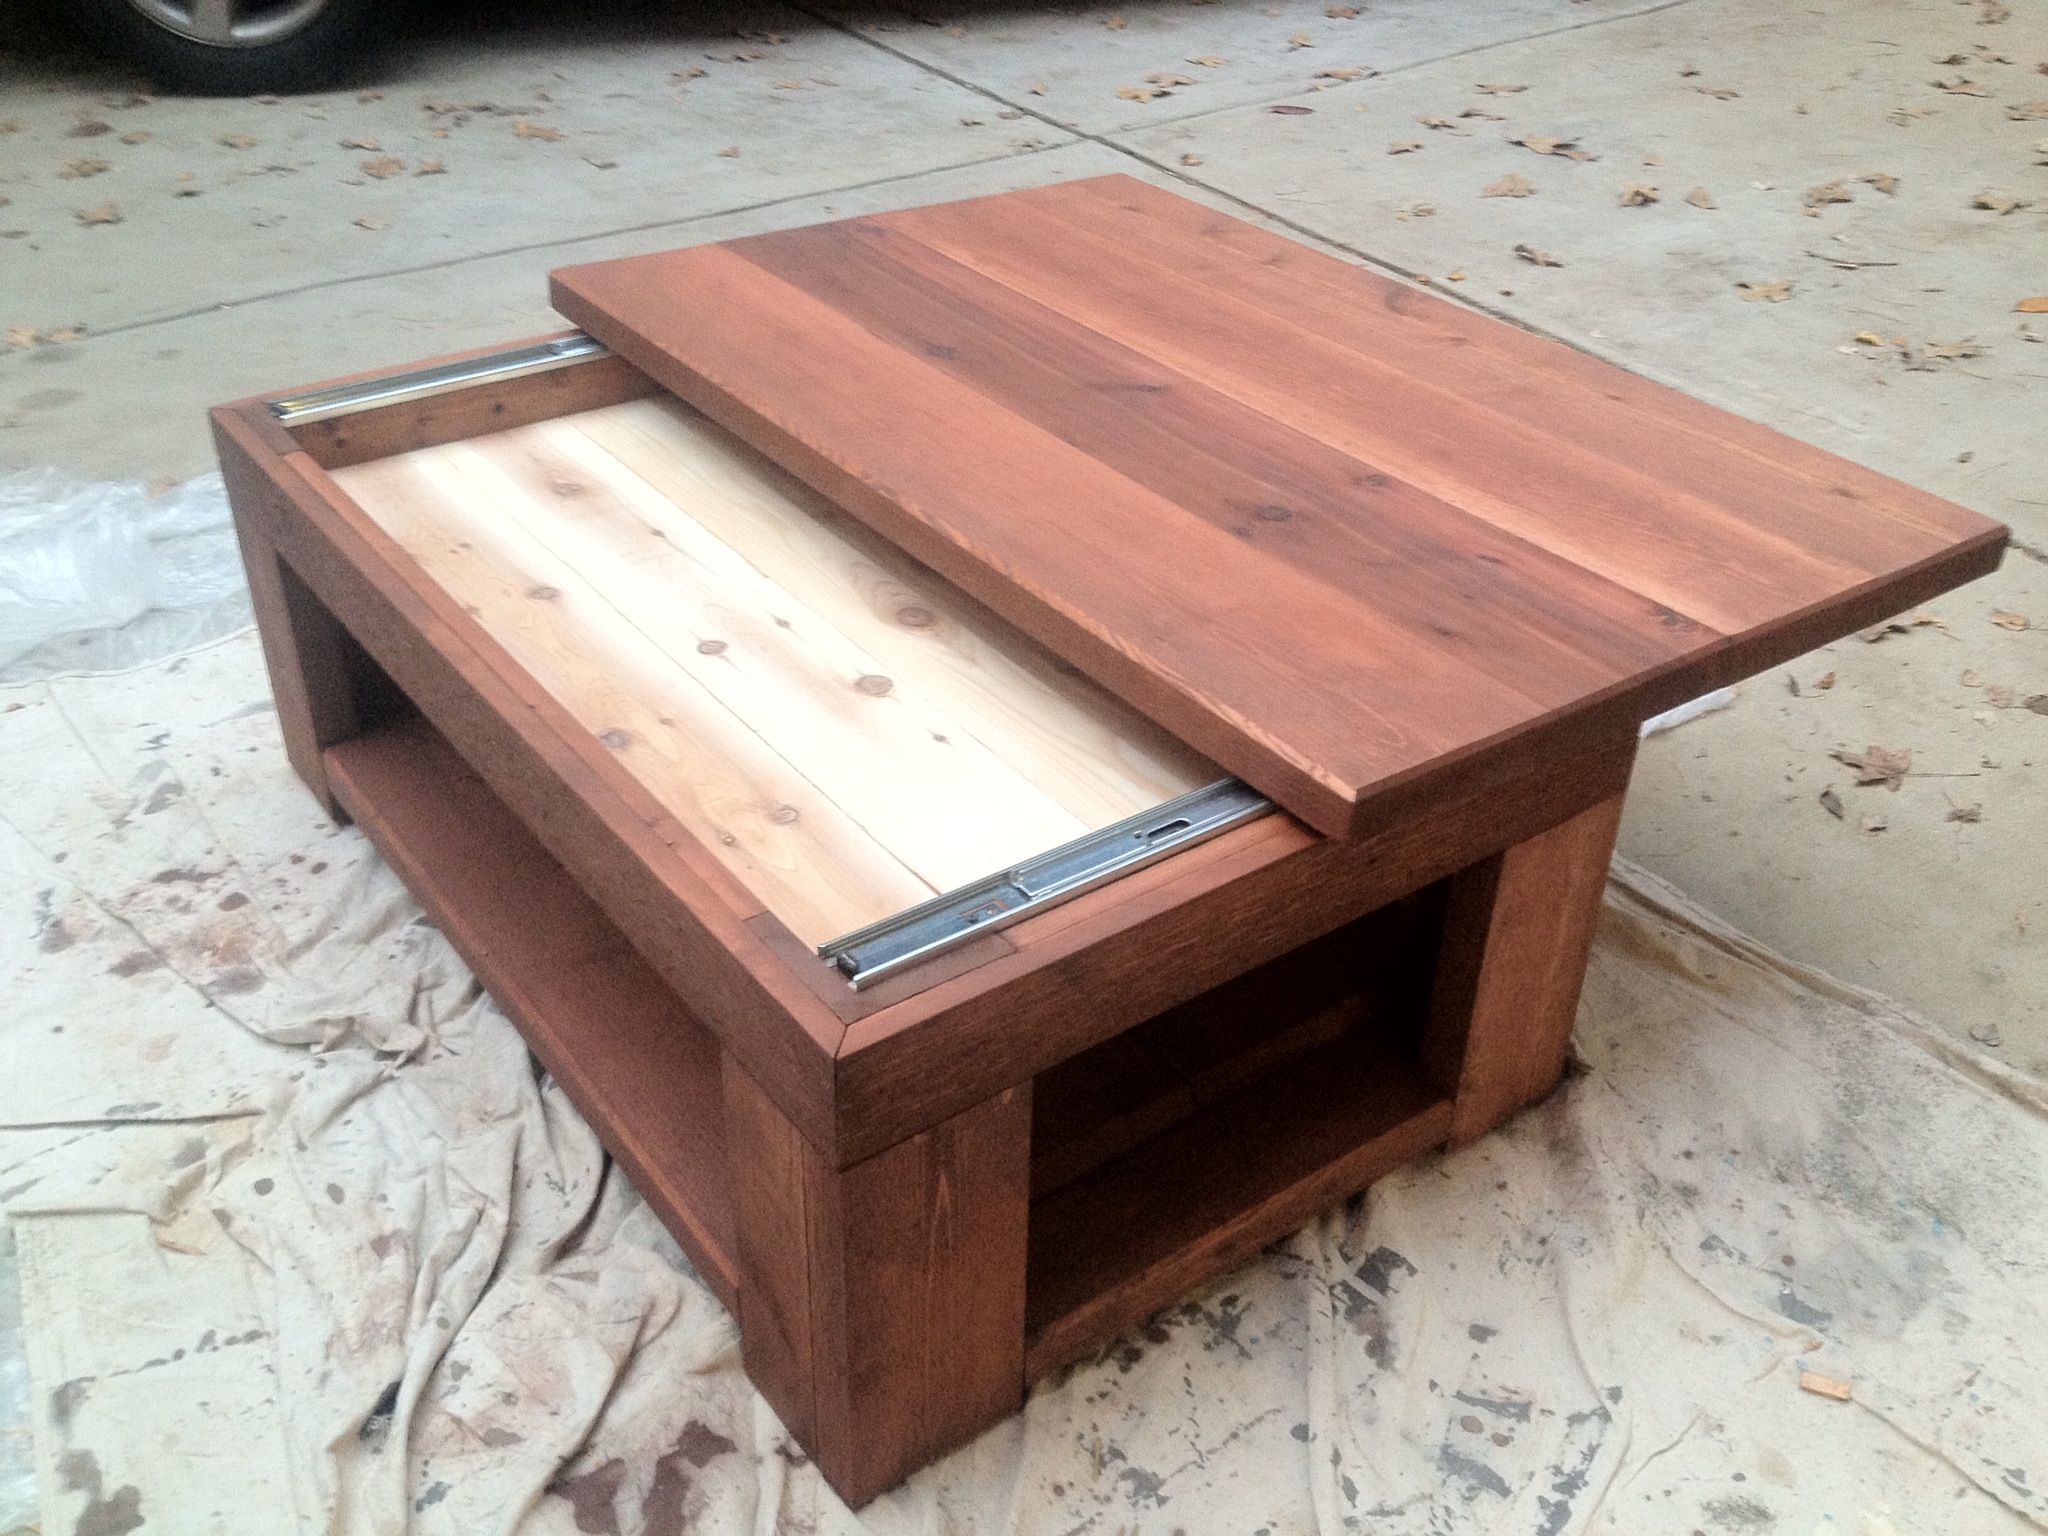 Merveilleux Cedar Coffee Table With A Sliding Top